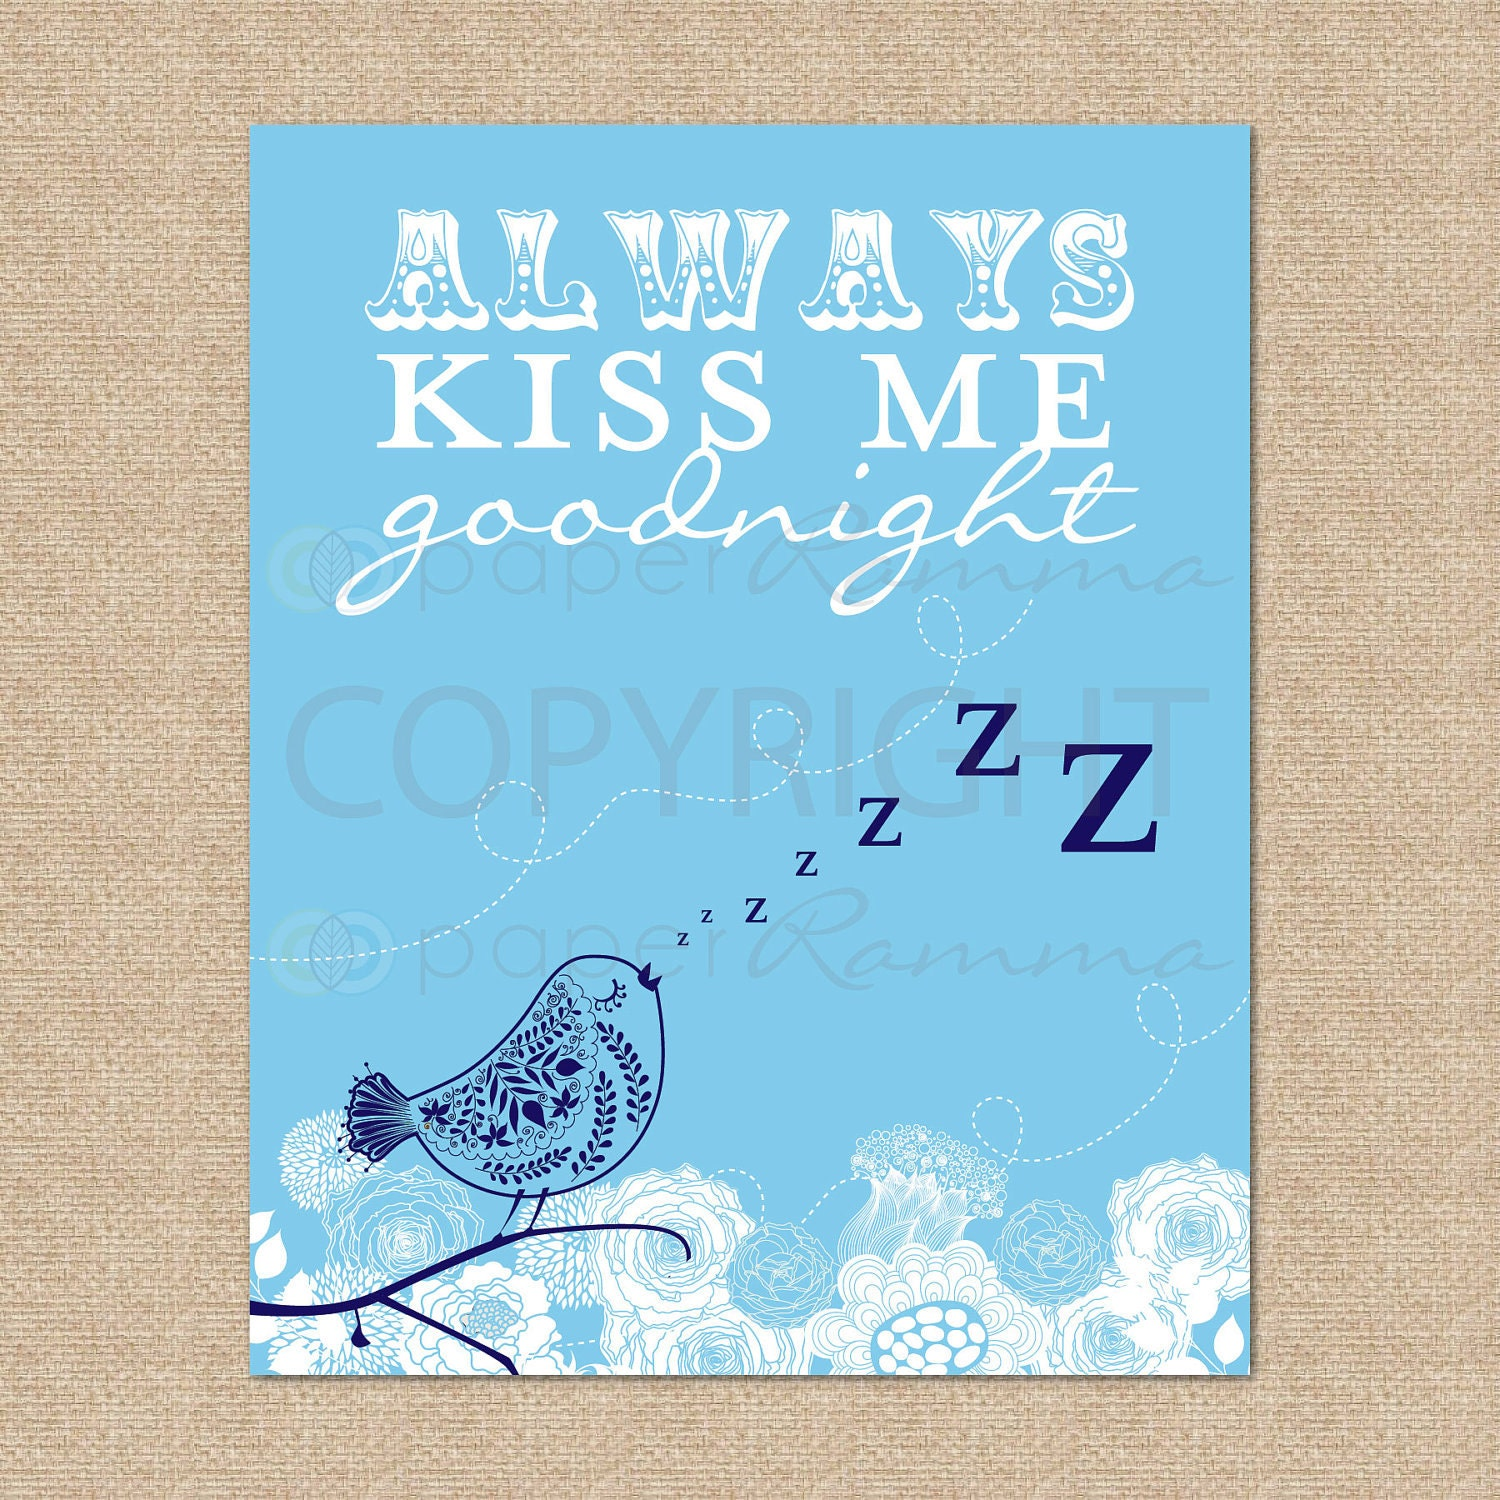 Always Kiss Me Goodnight - 8x10 - Archival Giclee Art Print for Nursery / Child's Room